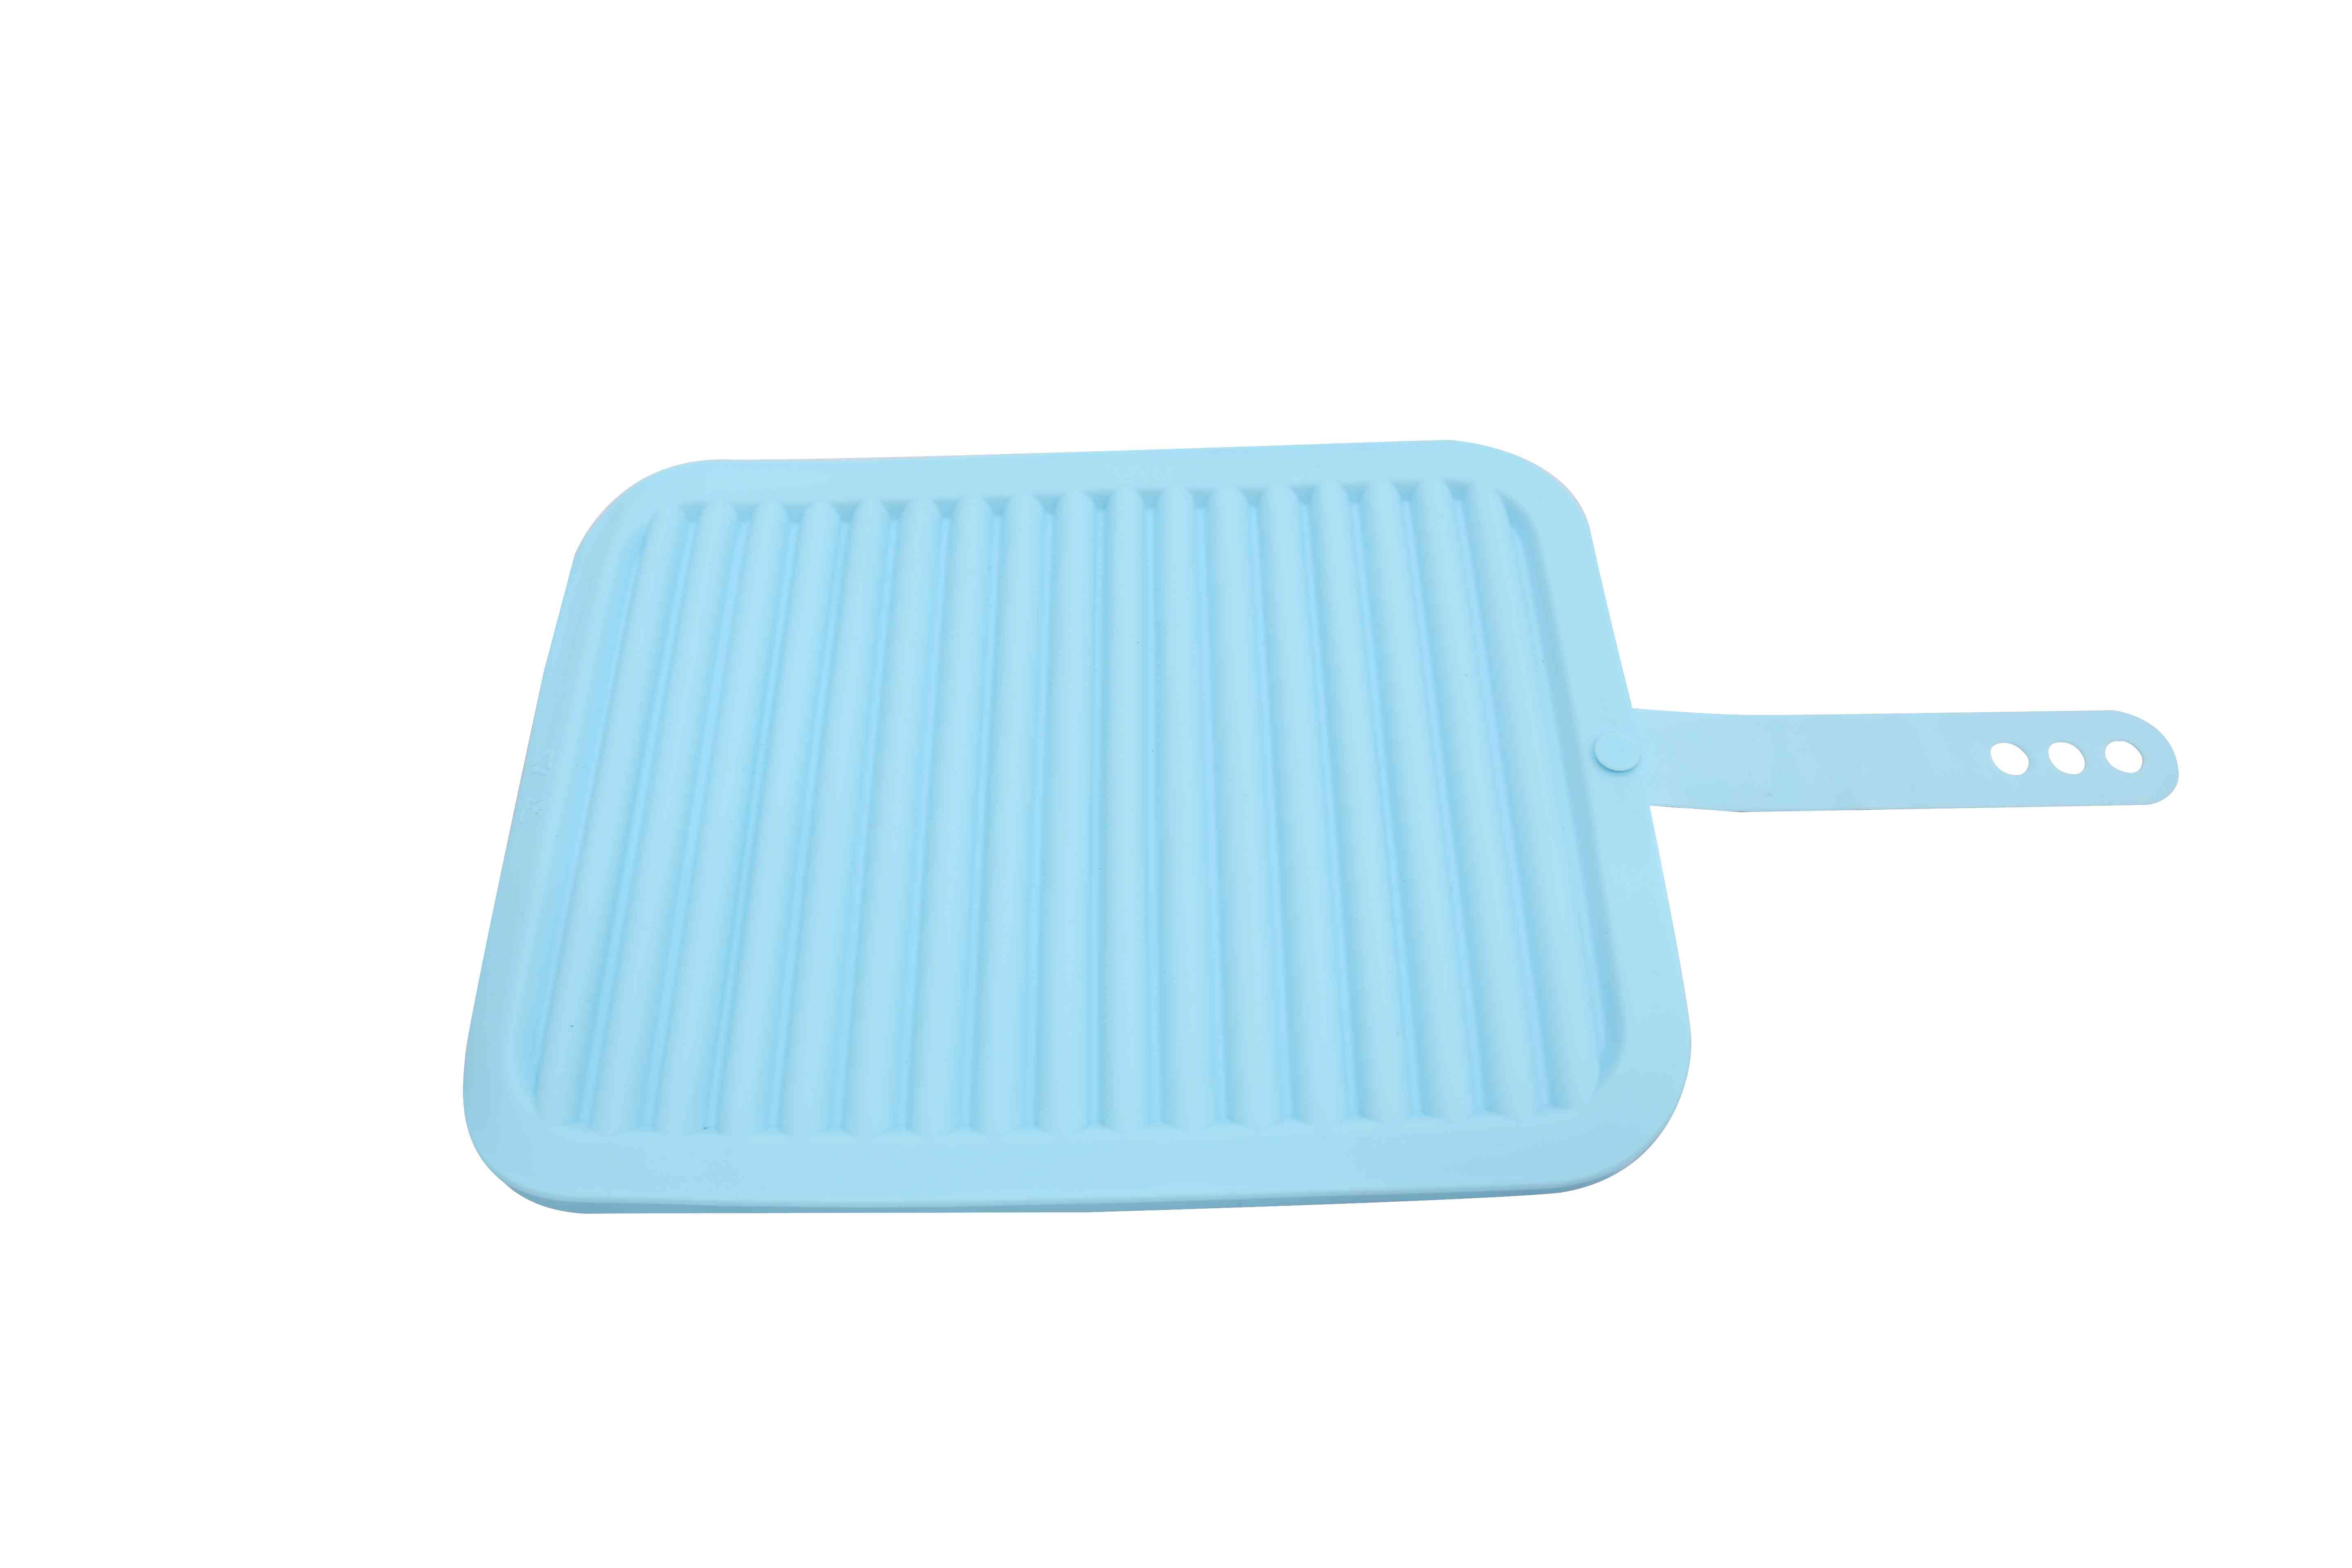 wholesale OEM silicone placemat which capable of rolling up and saving space